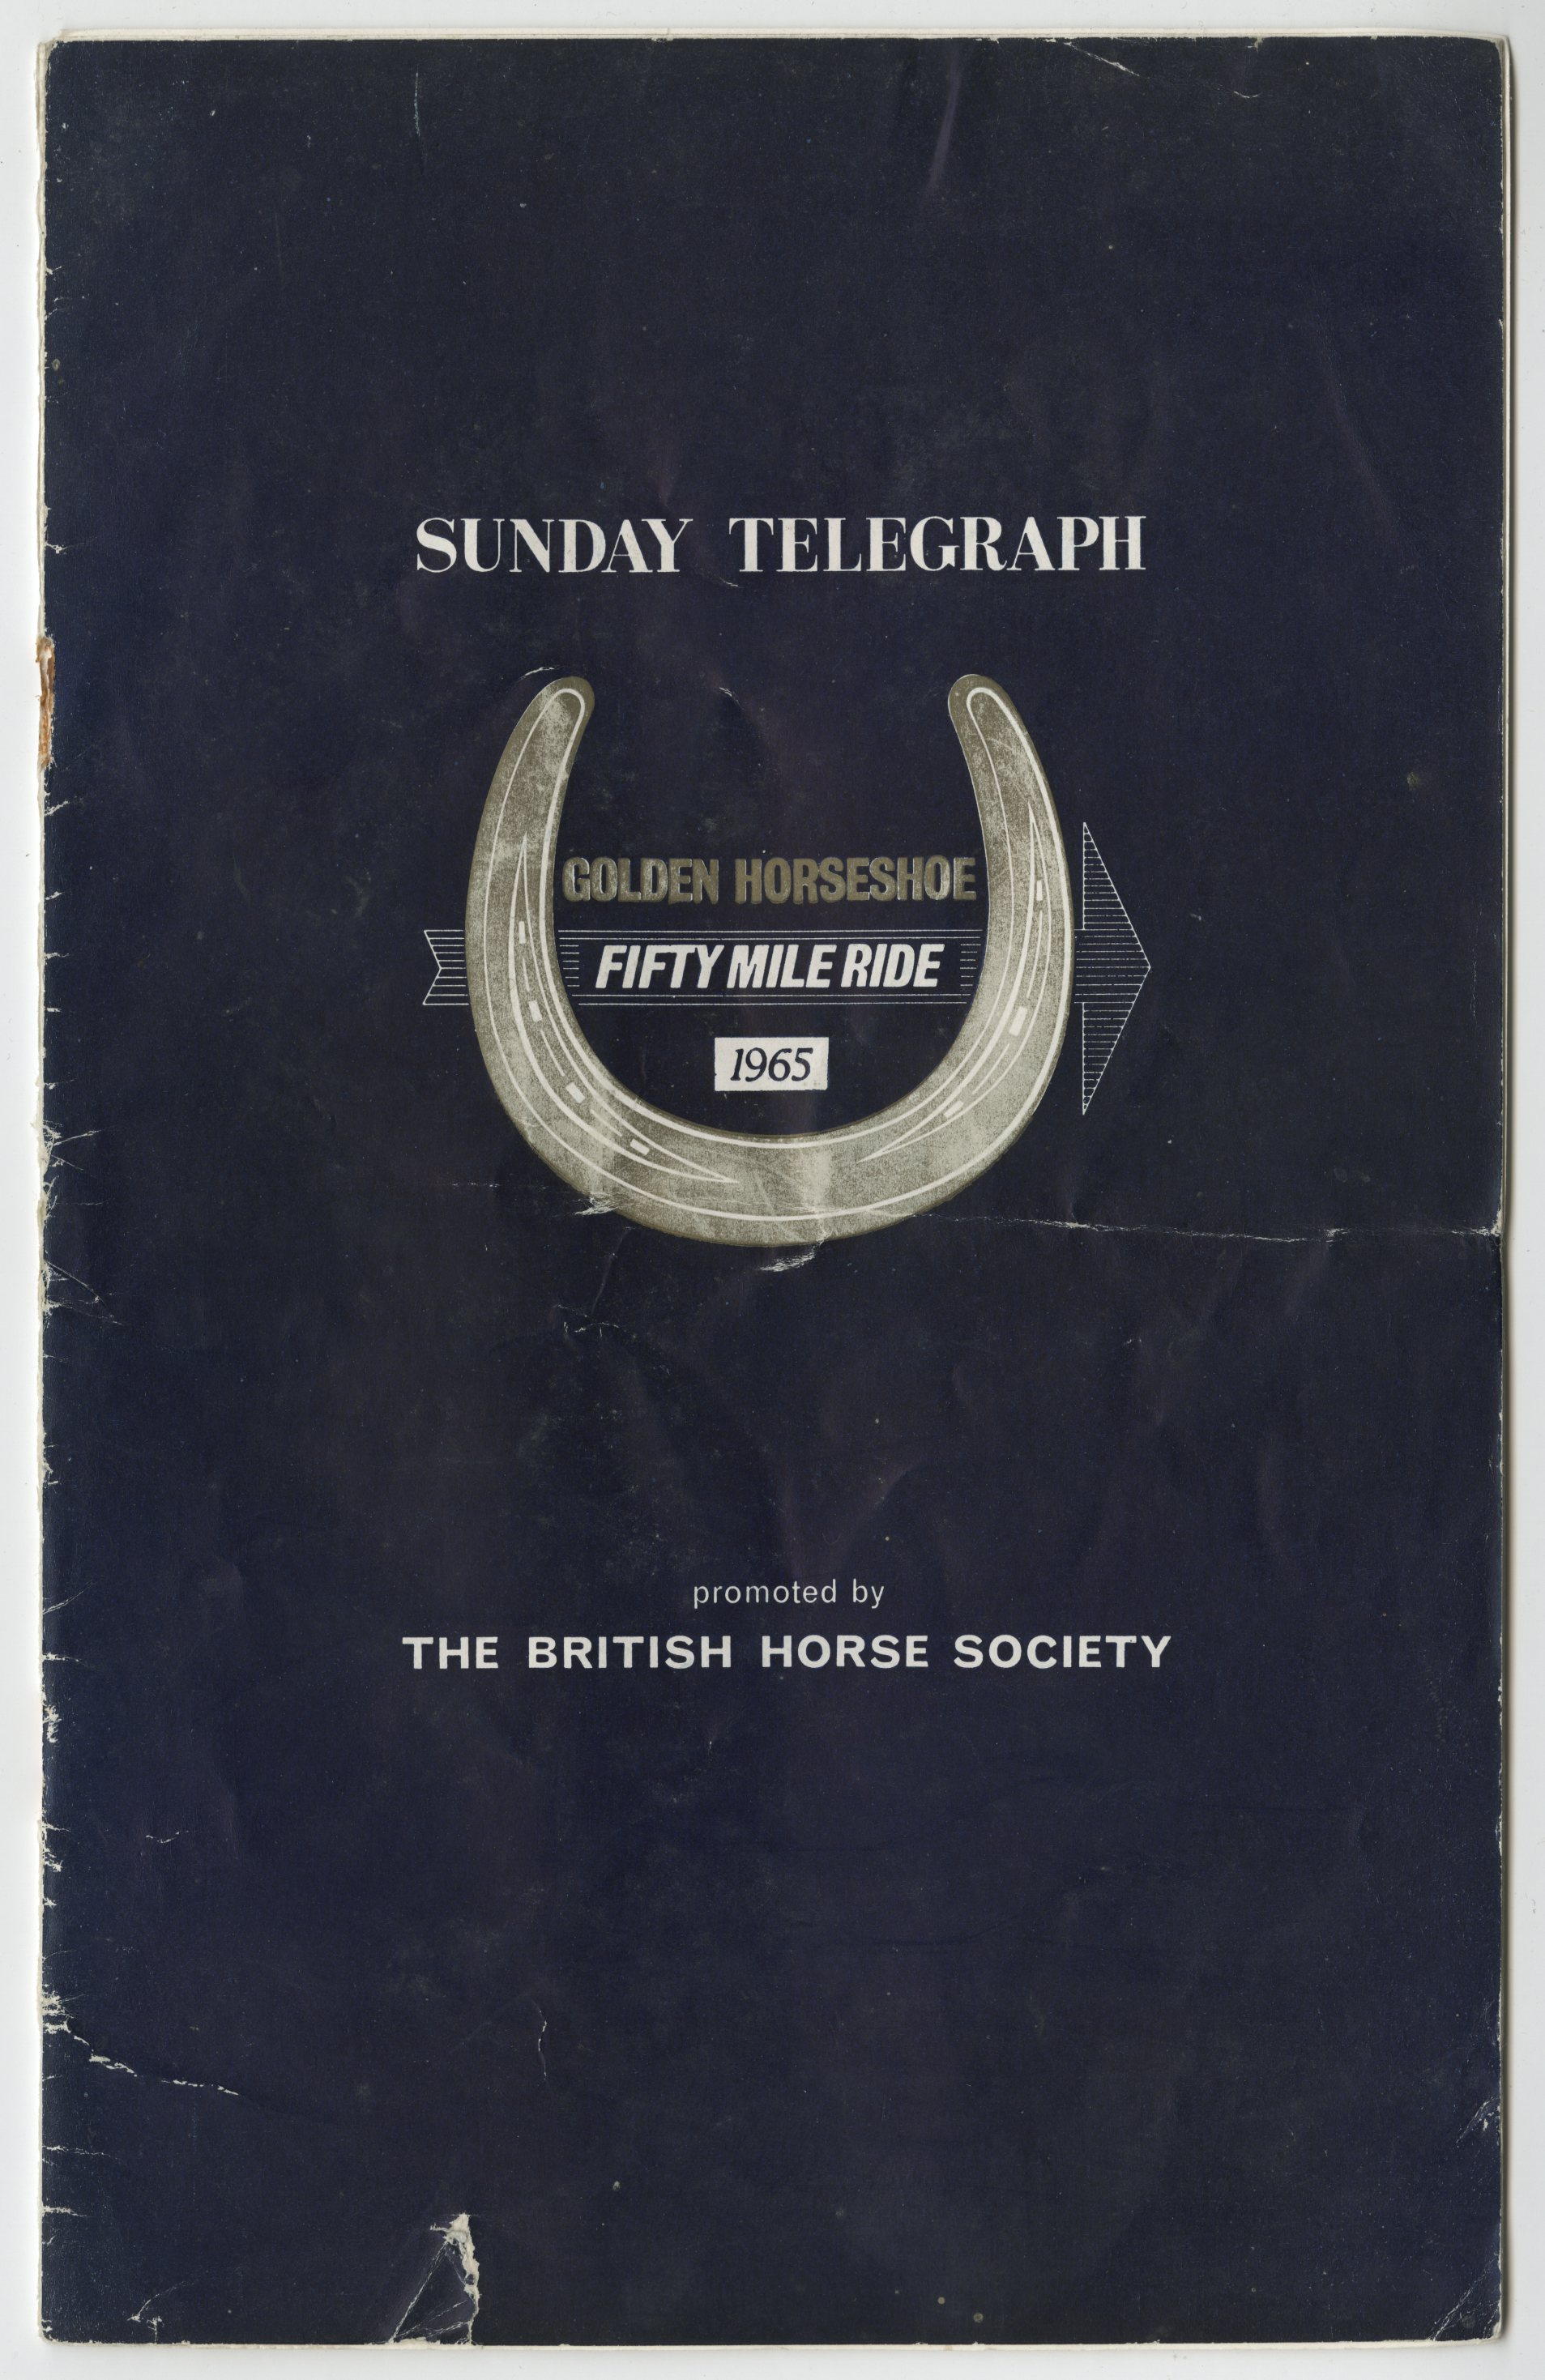 EUL MS 397/568 Programme for Golden Horseshoe Fifty Mile Ride 1965